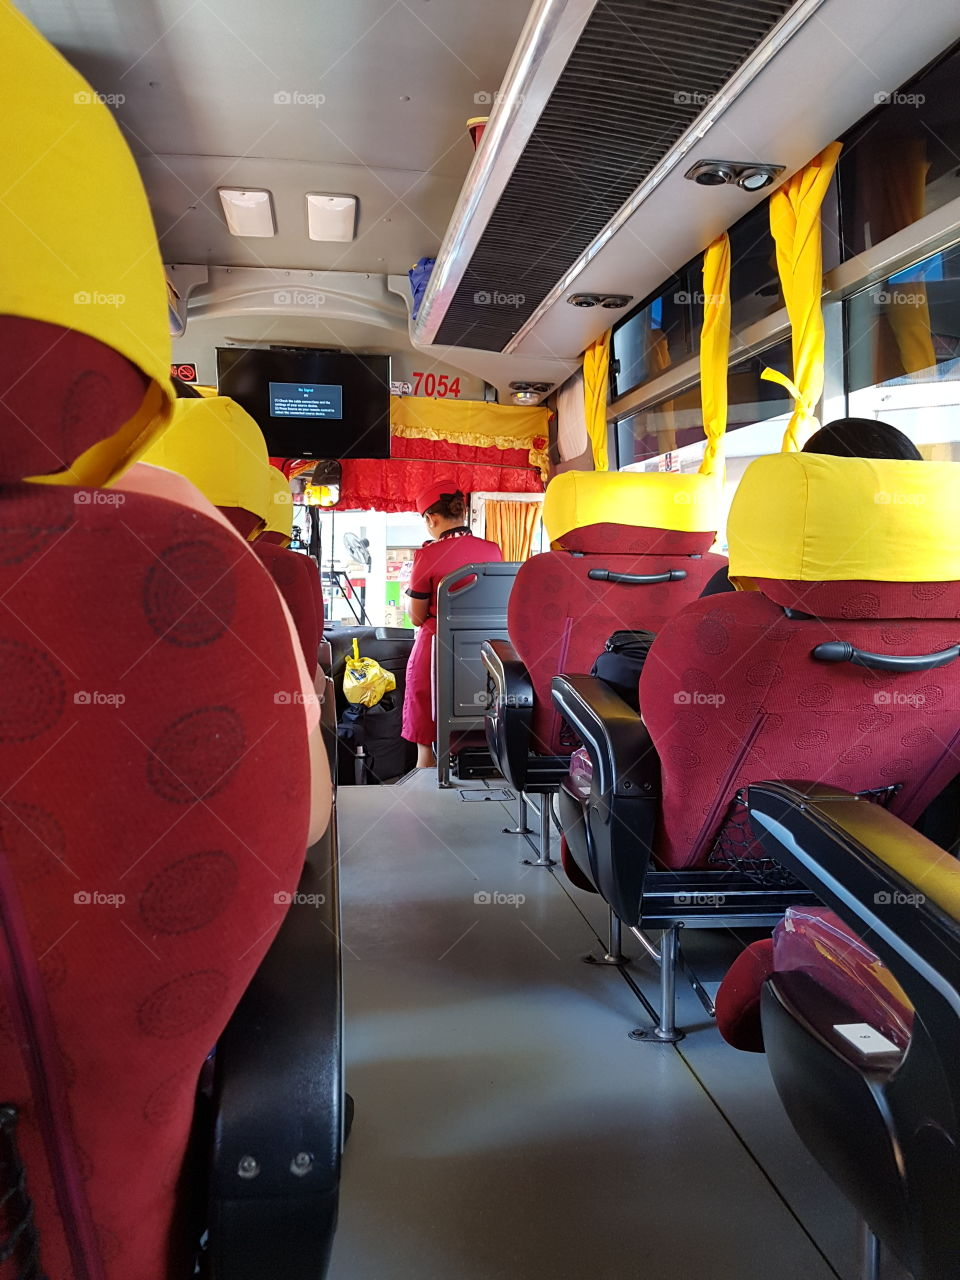 Bus interior of a deluxe vehicle. The inside of this bus is provided with a comfort room. Convenient for passengers use.